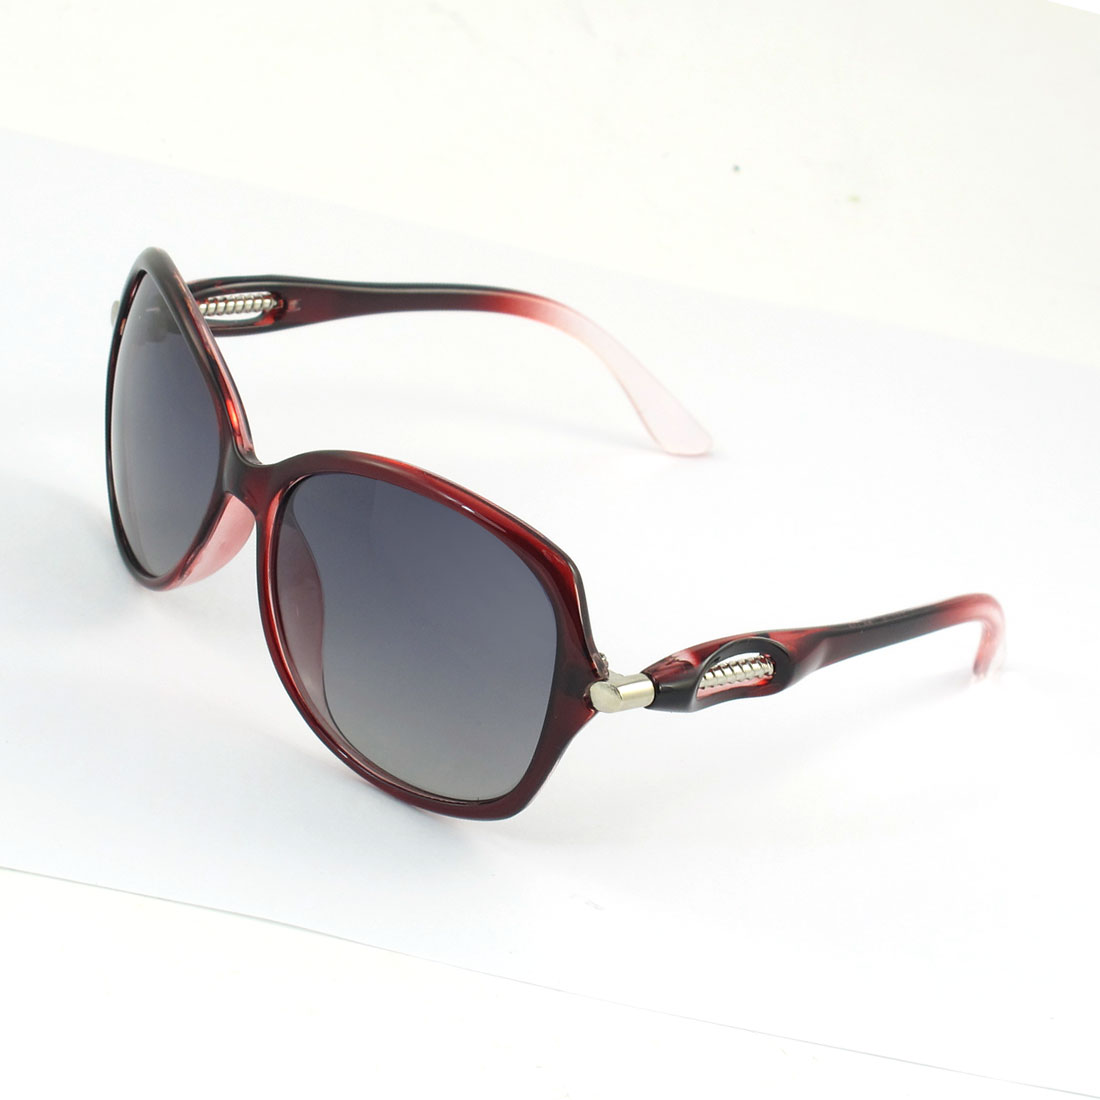 Lady Burgundy Rimmed Single Bridge Gradient Lens Polarized Sunglasses Eyeglasses